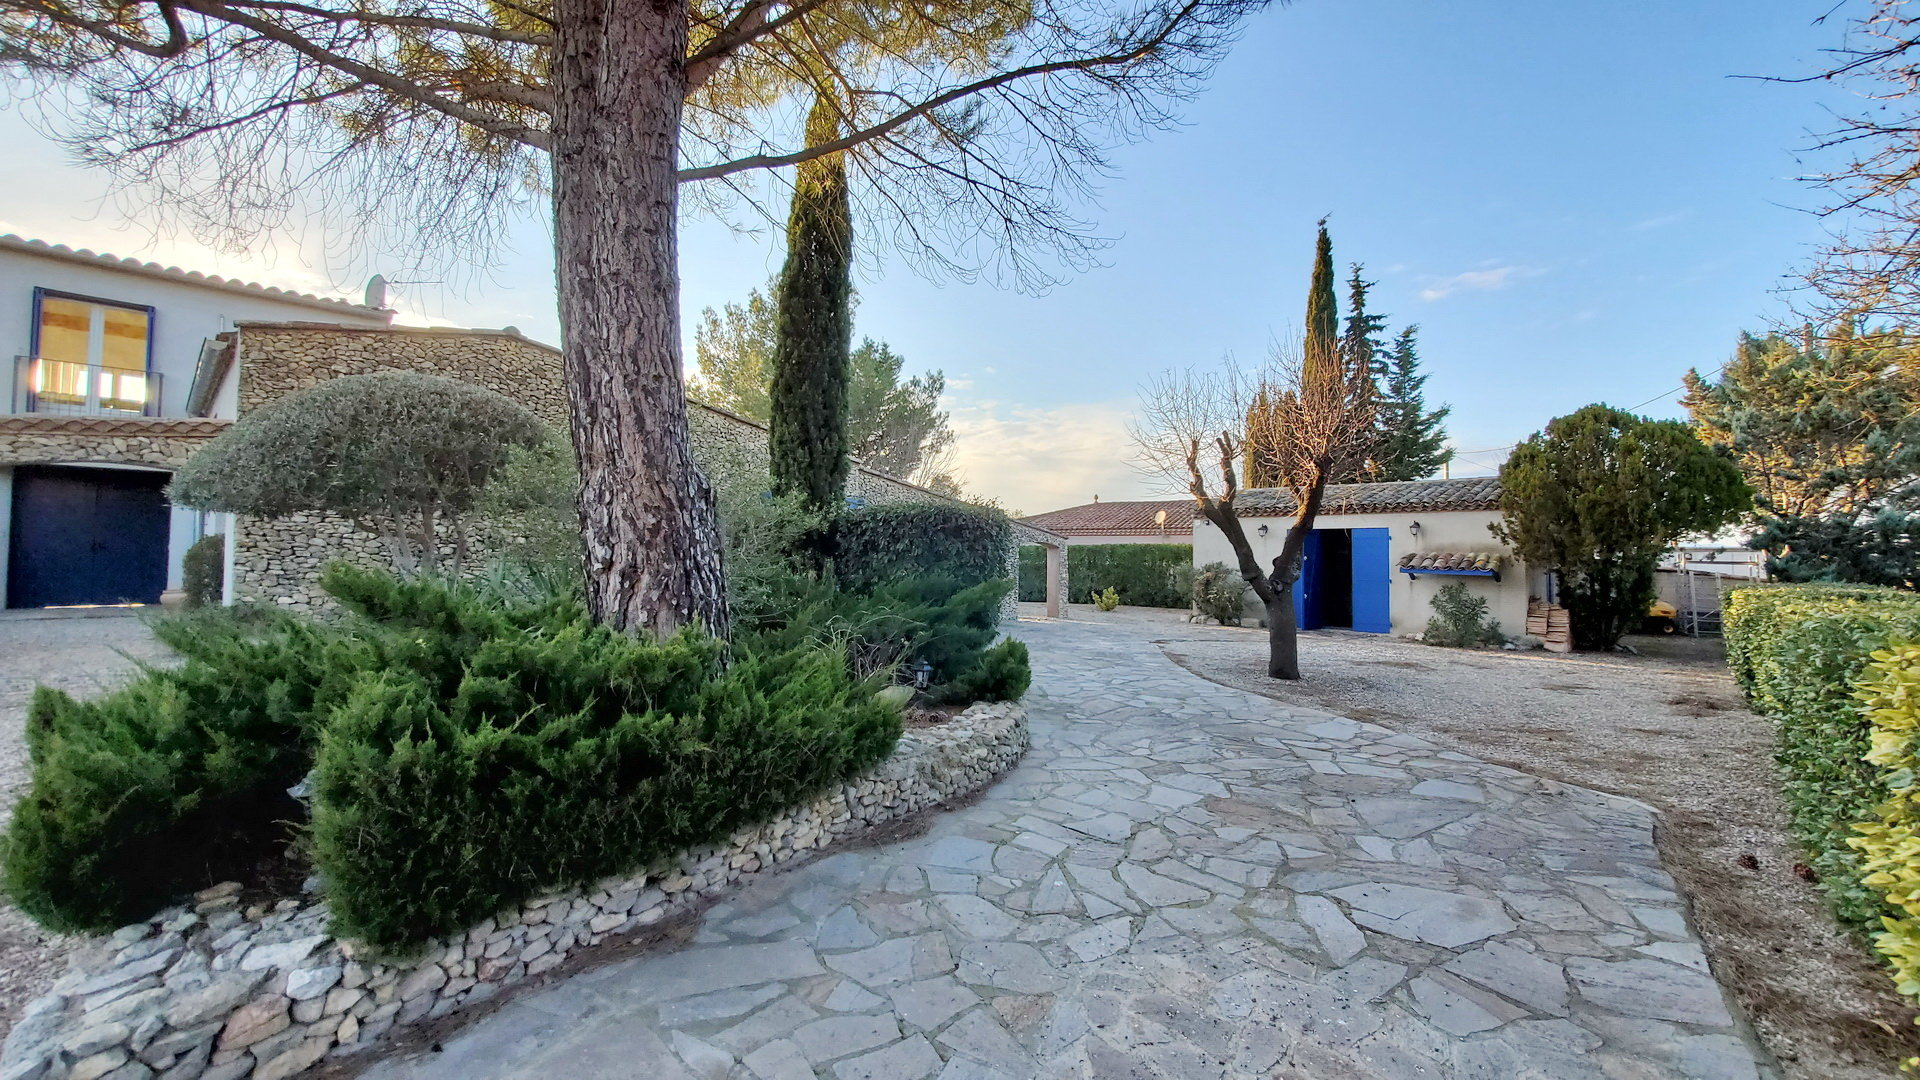 Detached stone house with big garden and pool